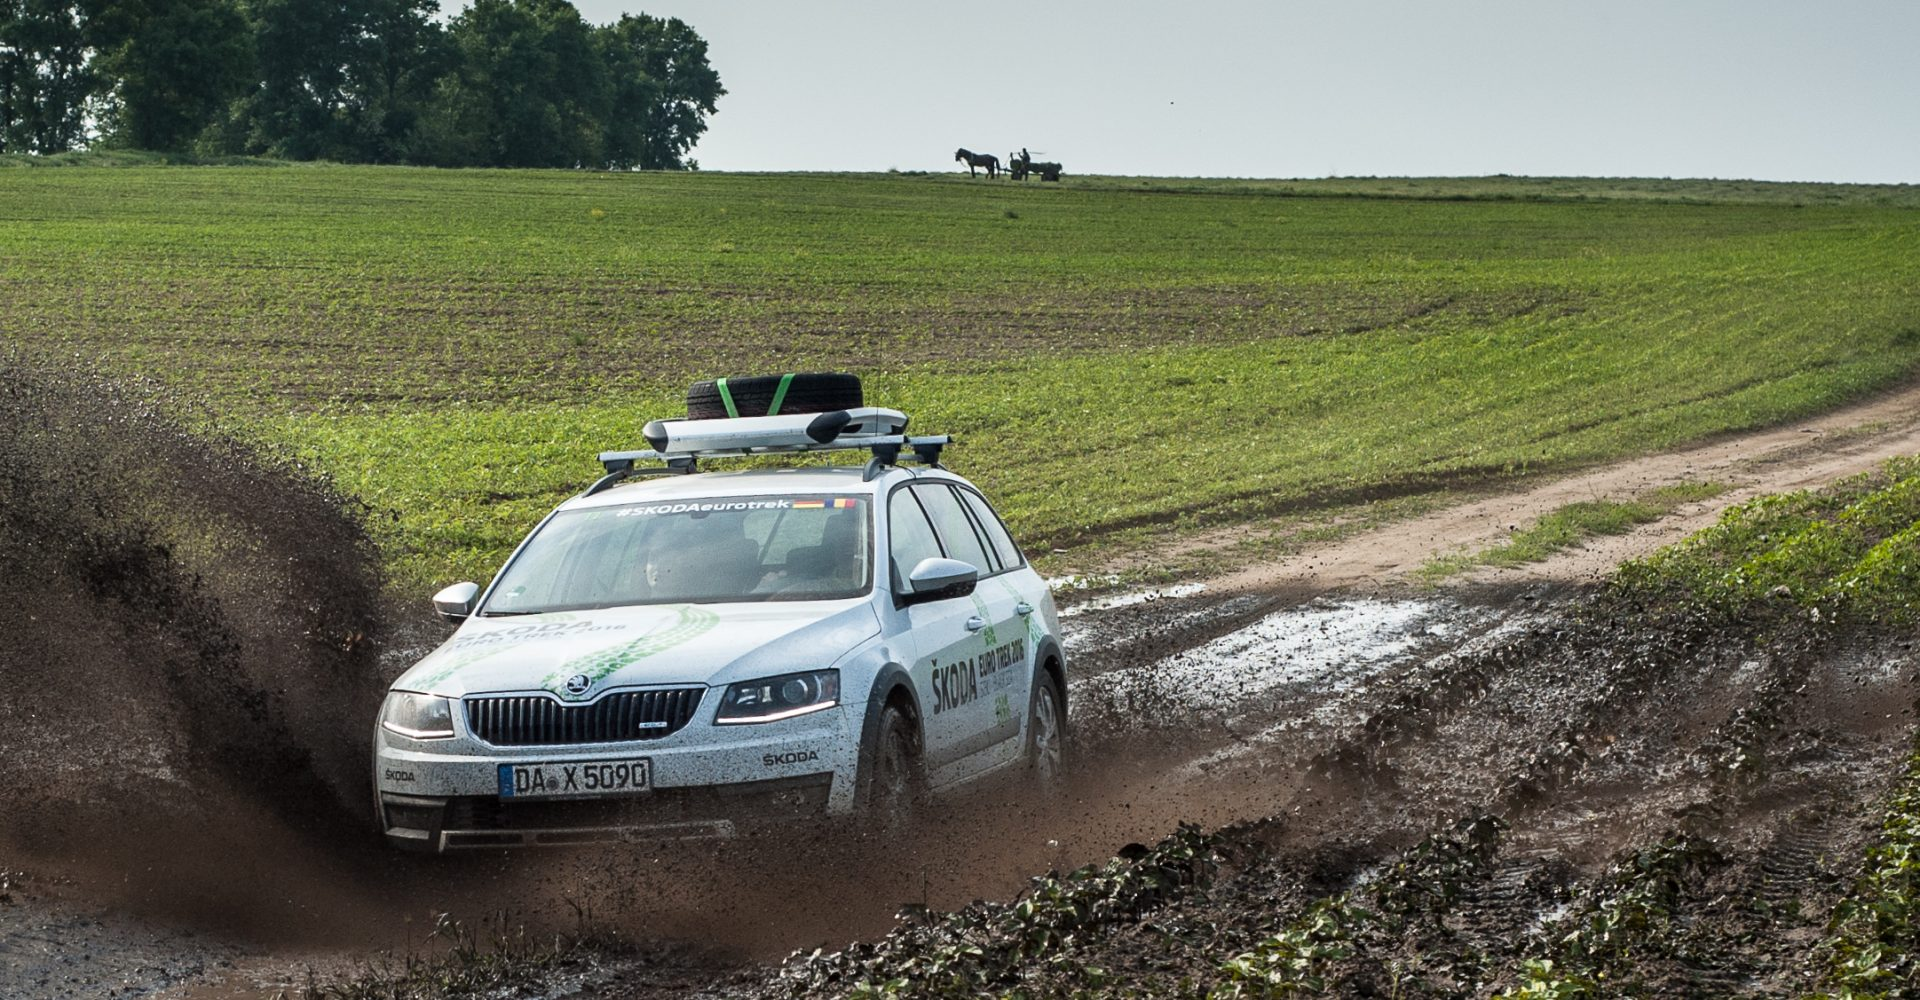 ŠKODA Euro Trek 2016: Gravel, Mud and Scary Vampire Stories